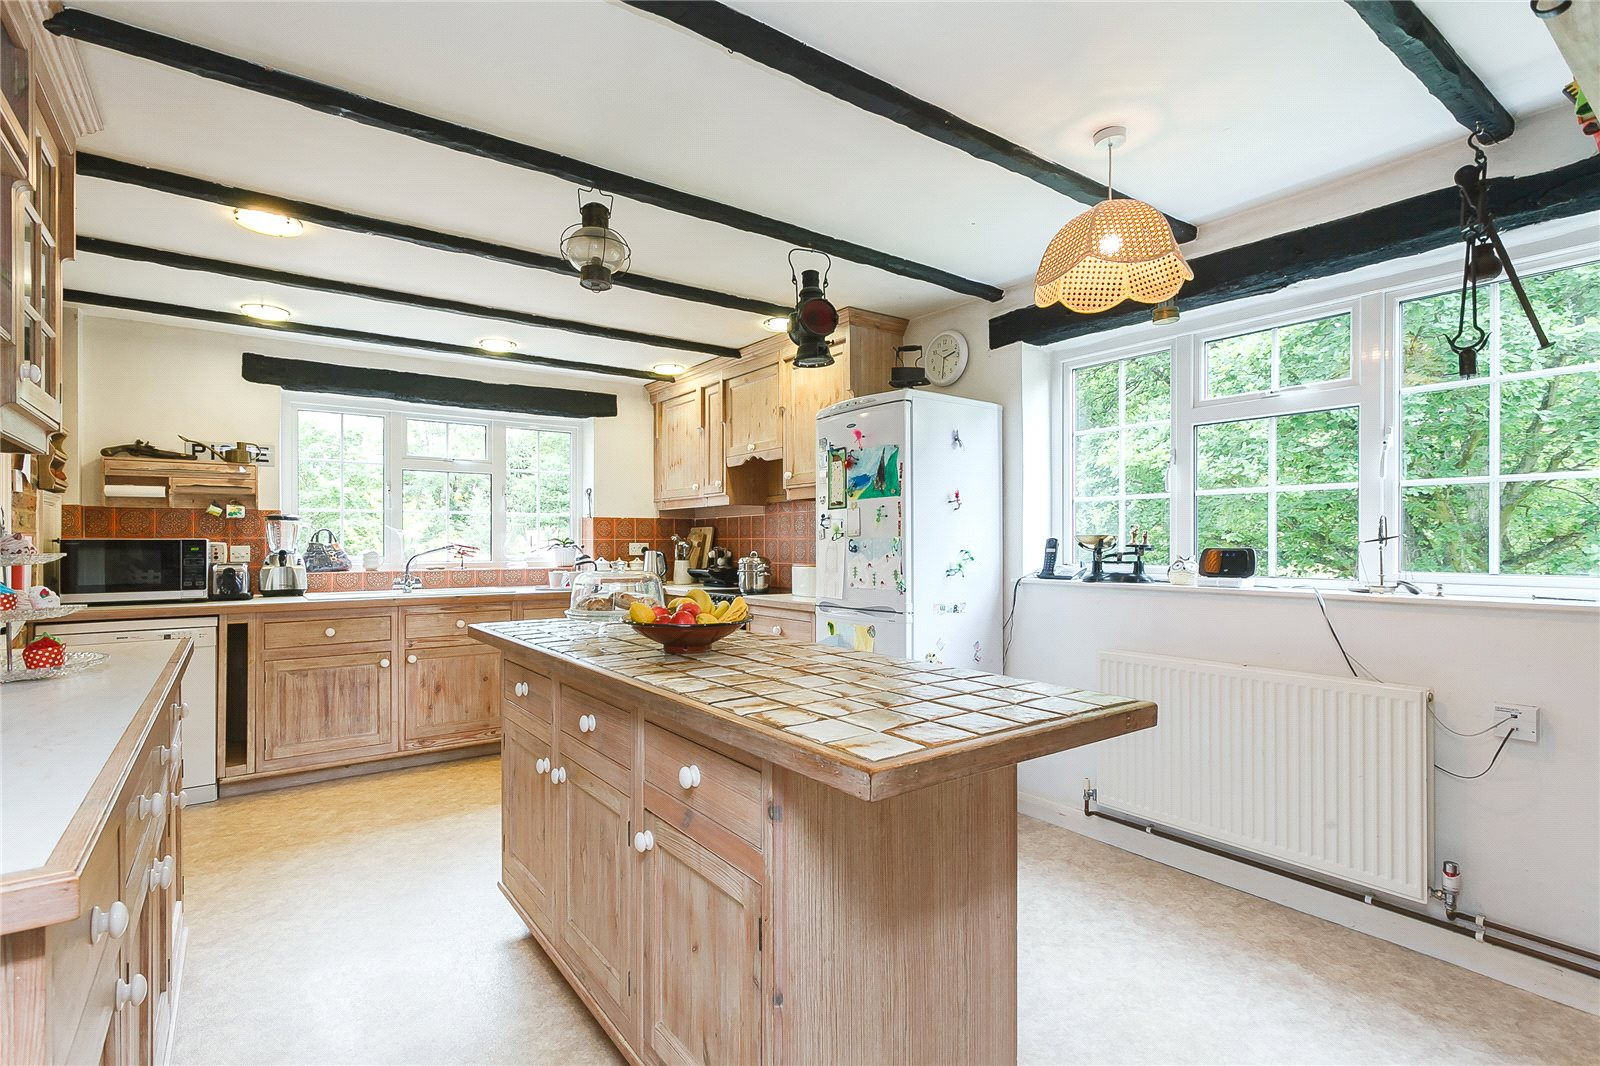 Additional photo for property listing at Camp Road, Gerrards Cross, Buckinghamshire, SL9 Gerrards Cross, Ingiltere